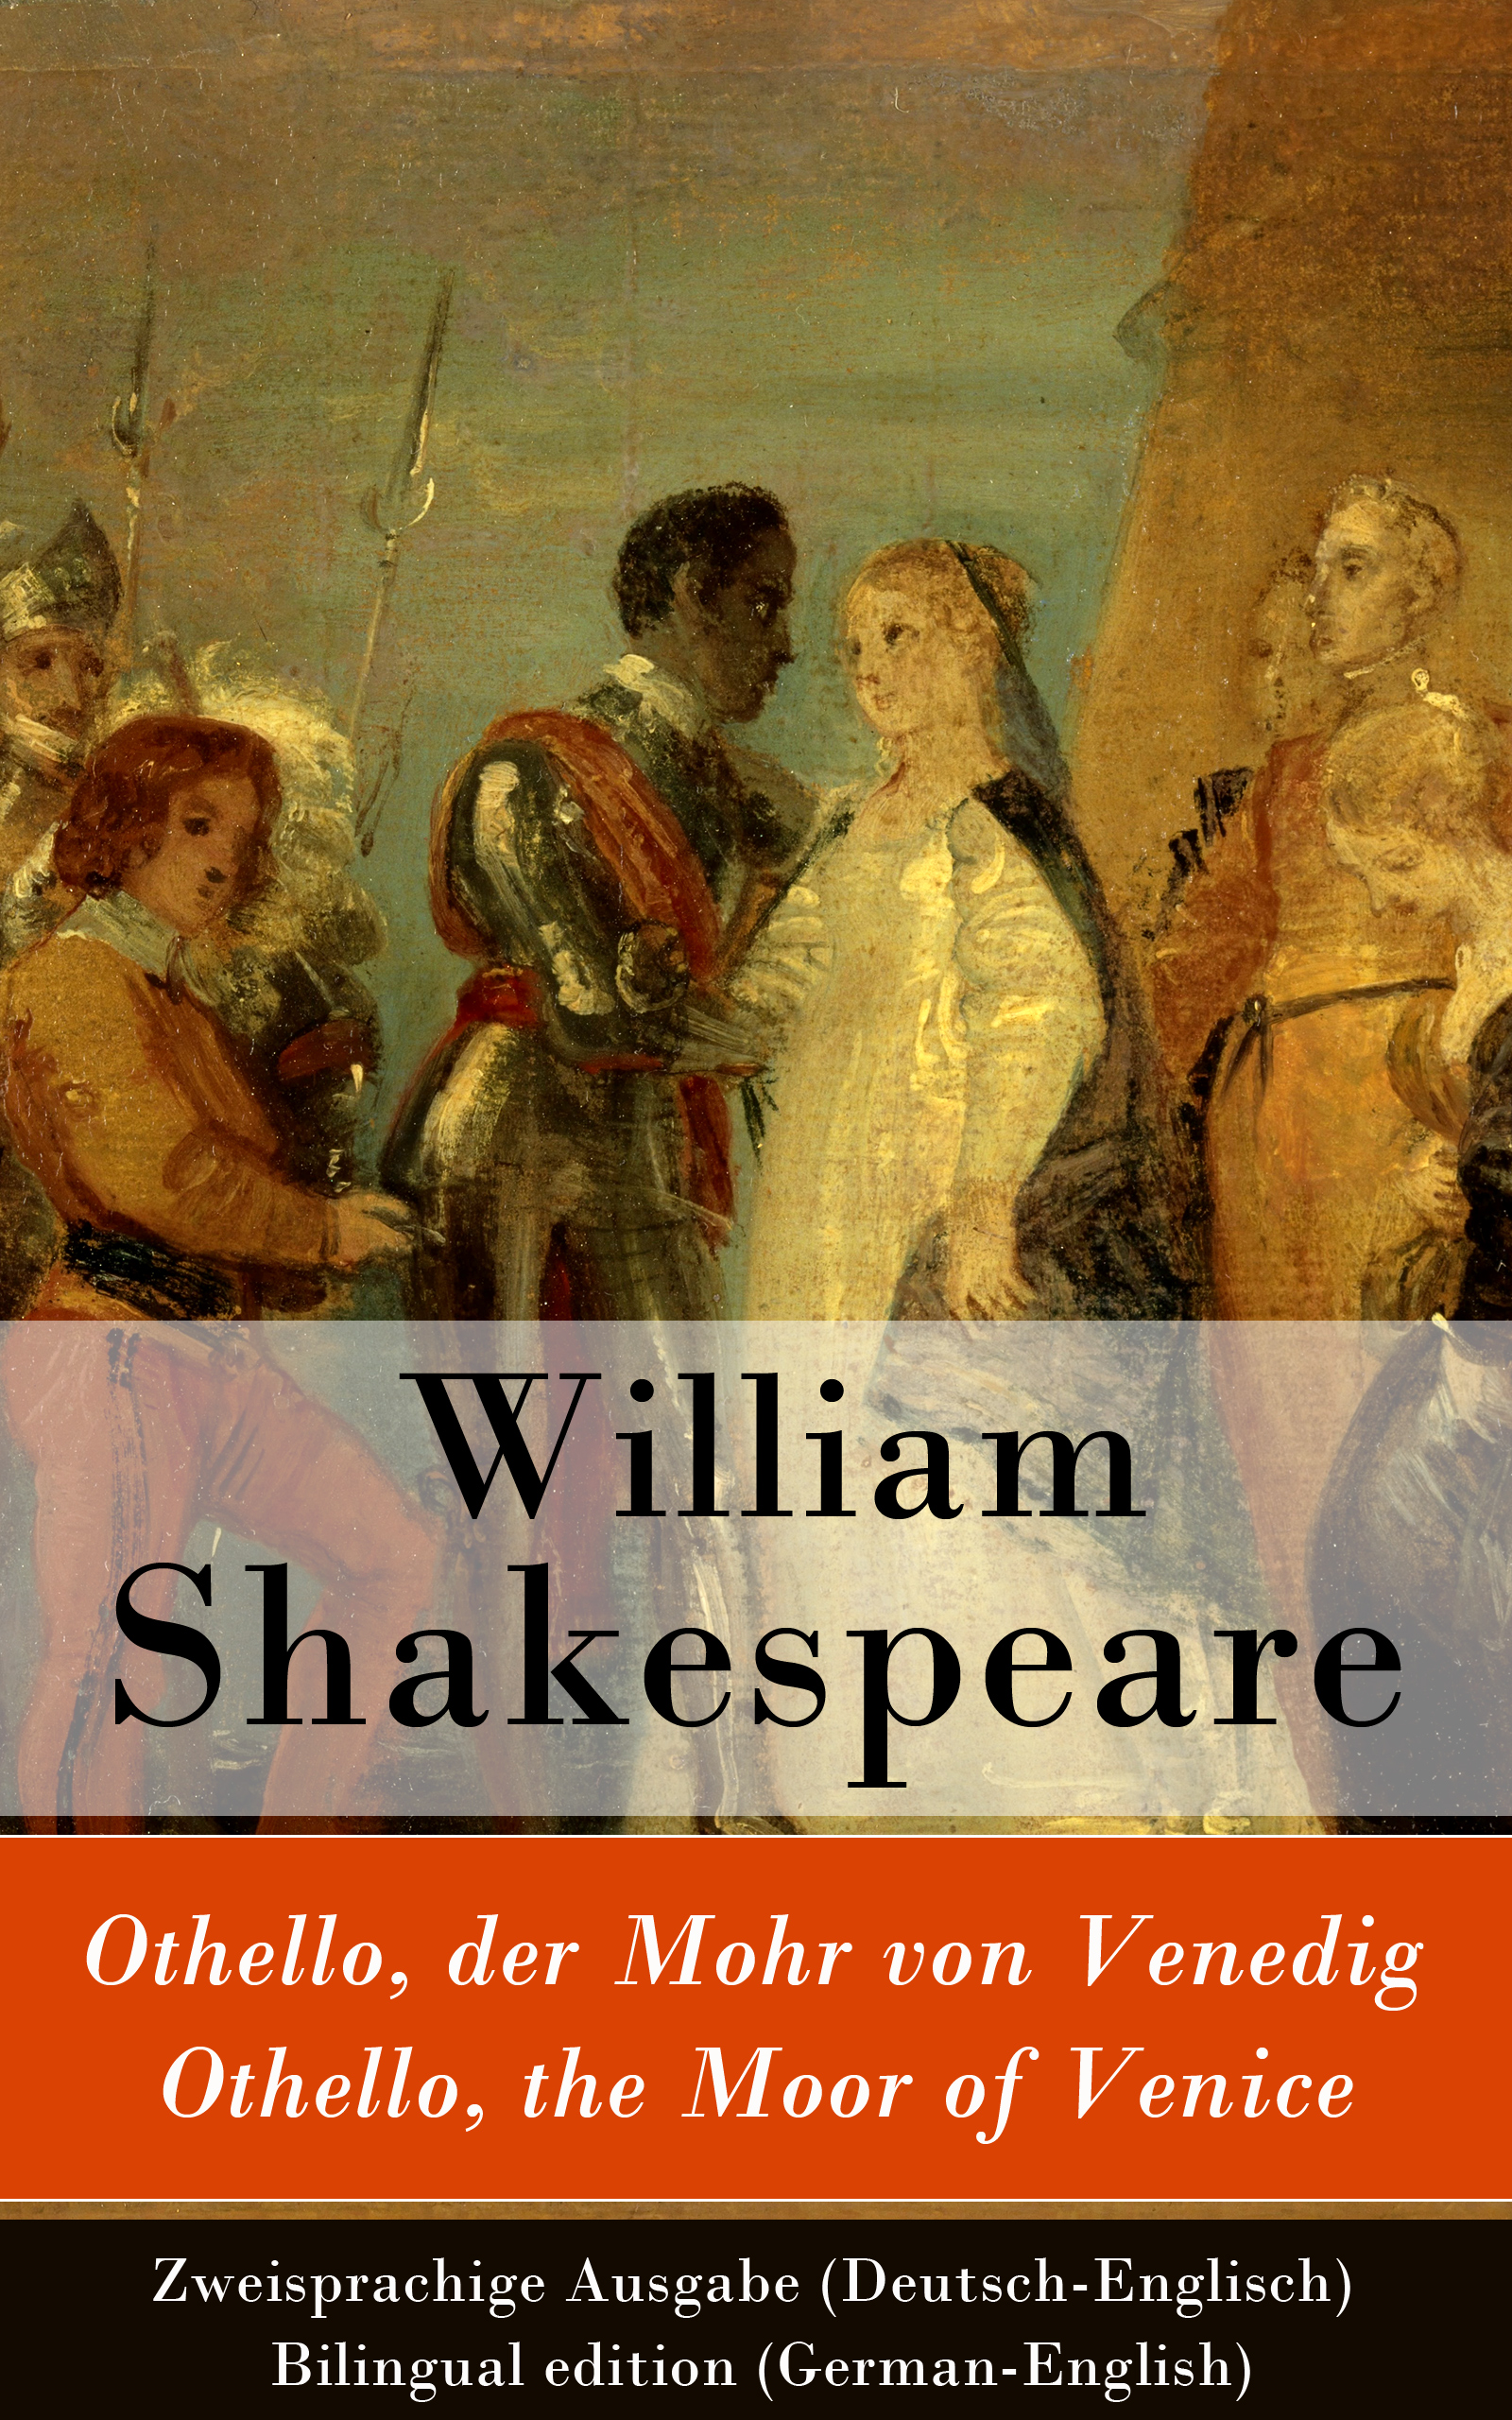 othello der mohr von venedig othello the moor of venice zweisprachige ausgabe deutsch englisch bilingual edition german english